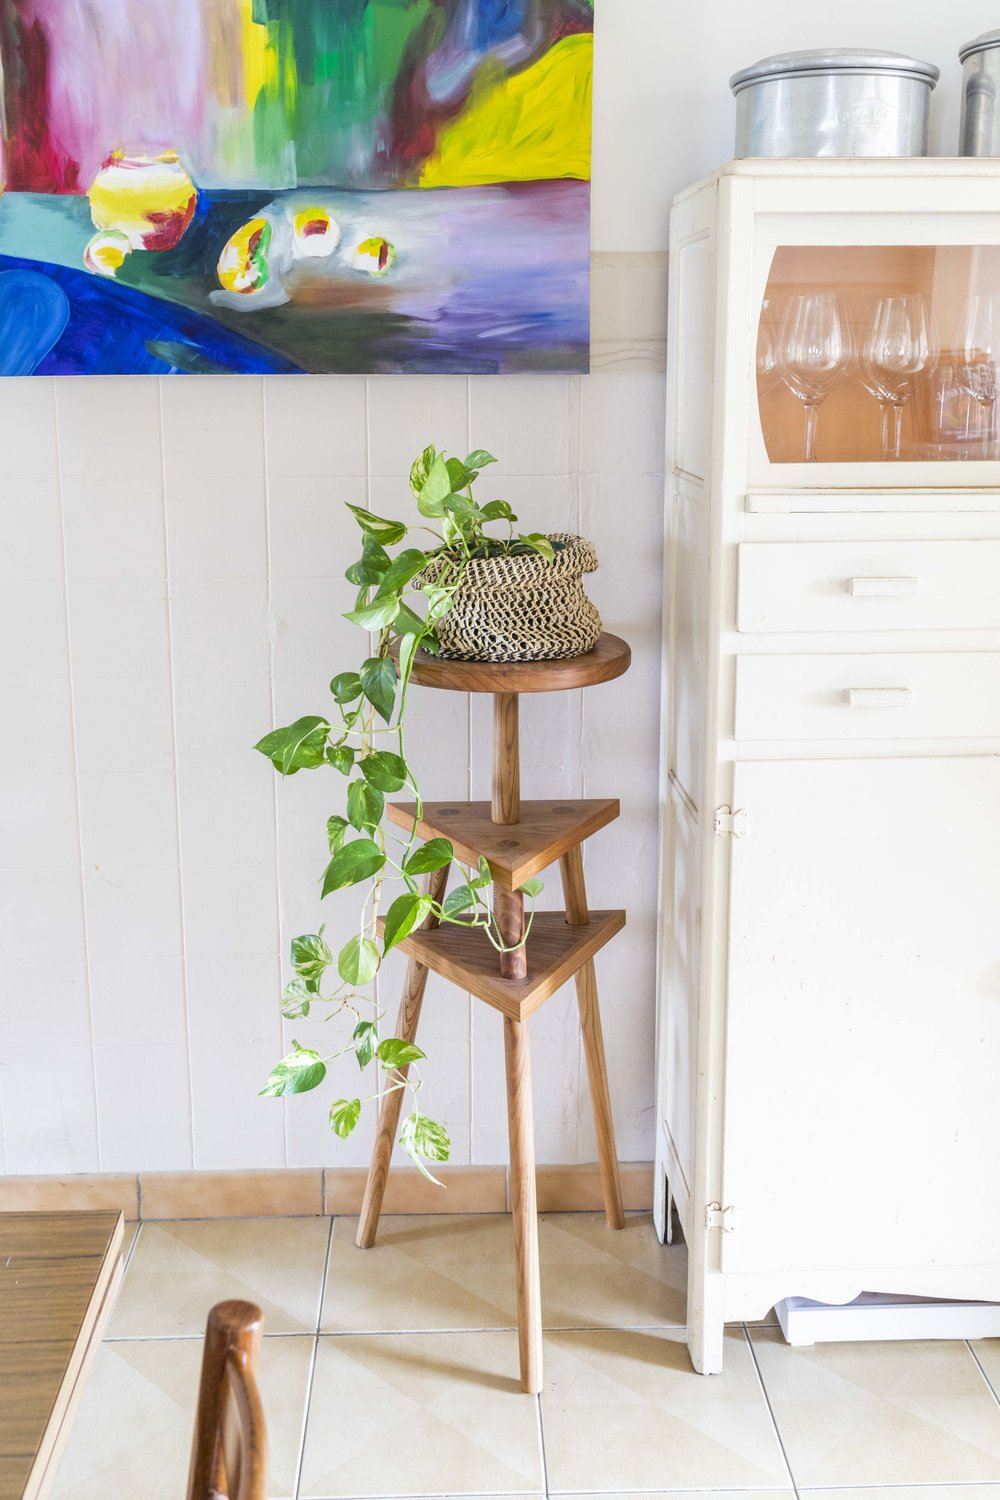 Inside the rented home of Kate Brouwer and Jace Yendall. Timber stand made by Jace. Photo by Dan Soderstrom for Rented Space.